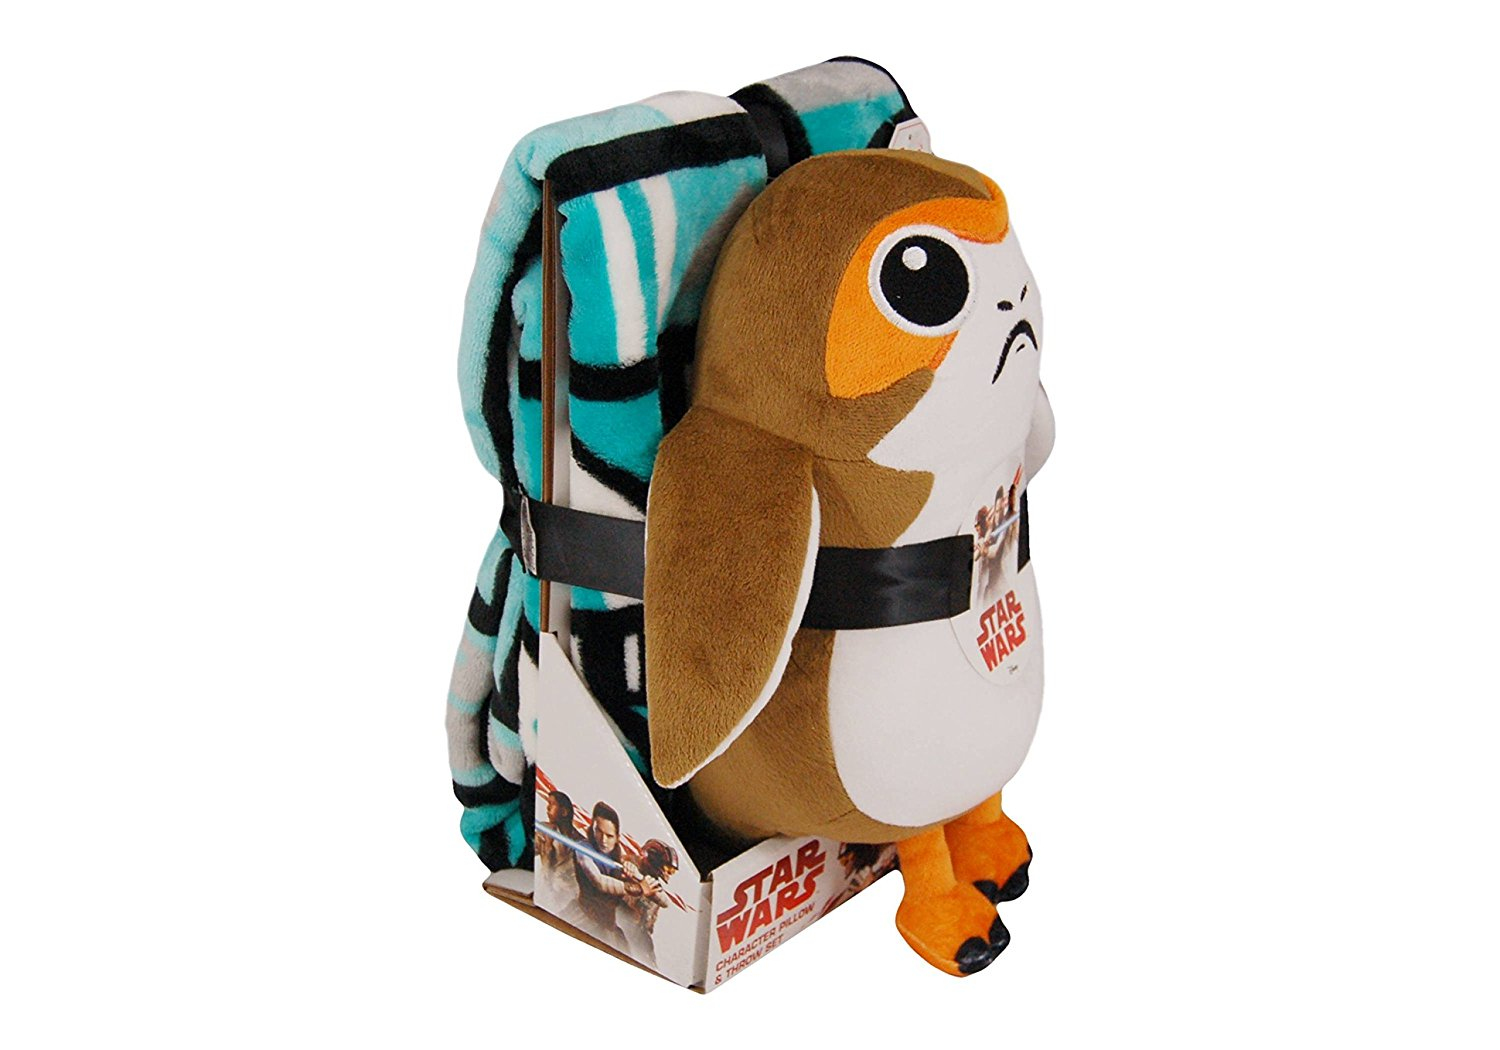 TLJ Porg Throw Blanket & Pillow Buddy 1